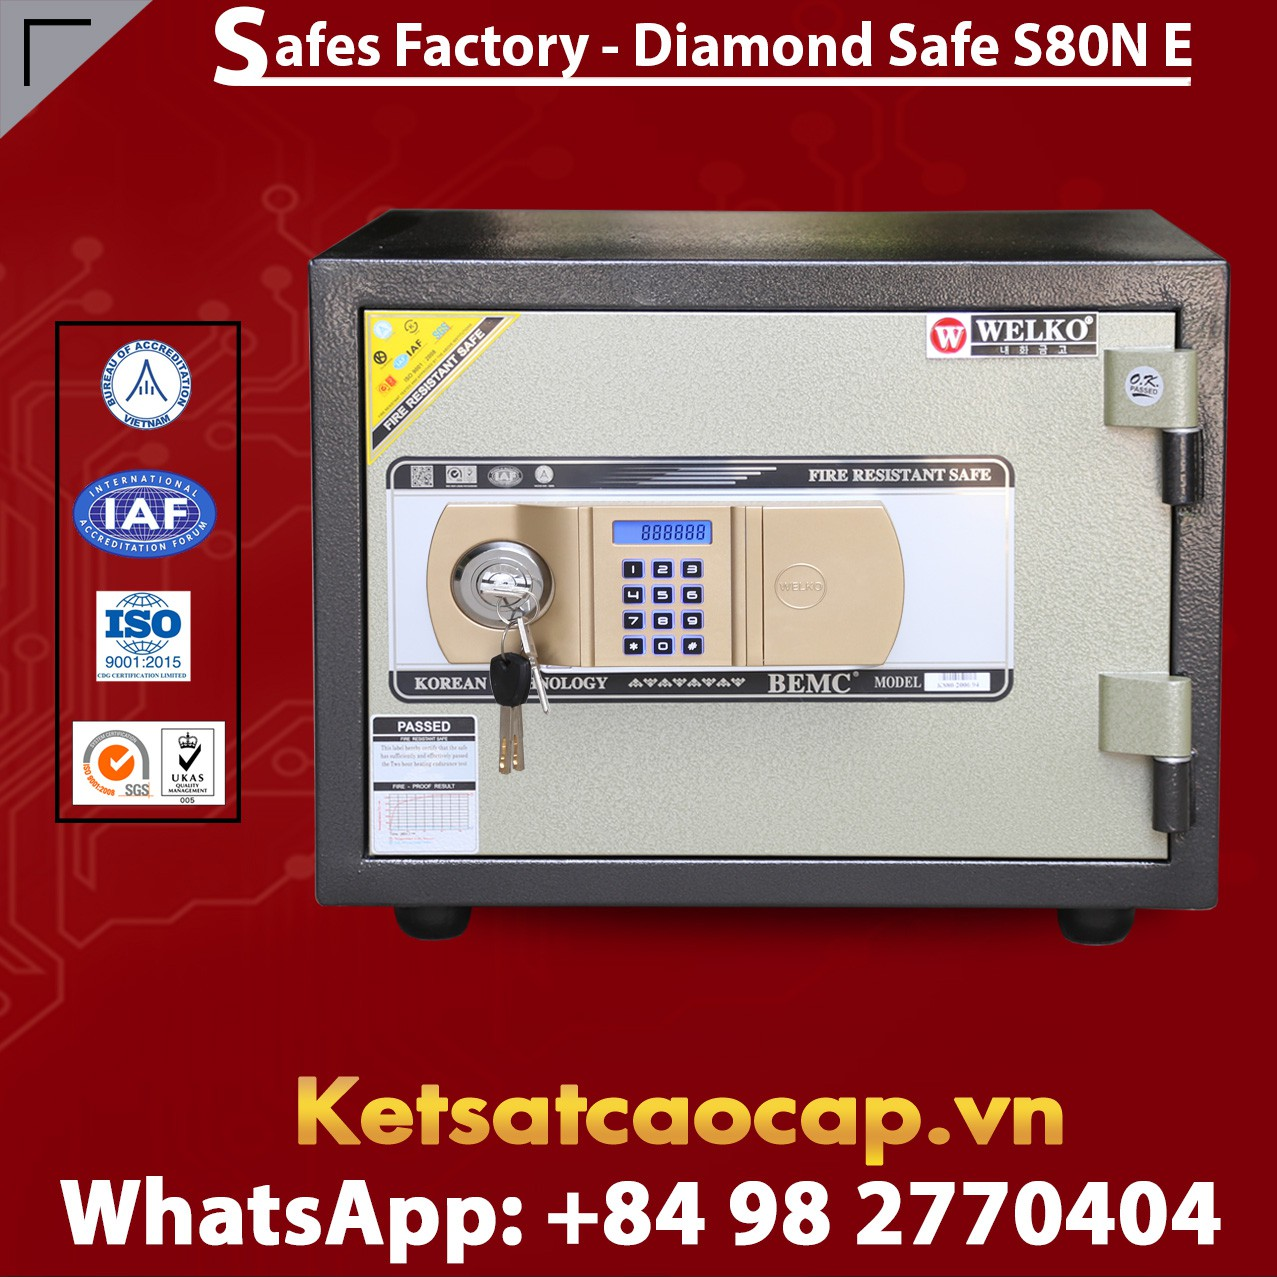 OFFICE SAFES S80N GOLD EVN